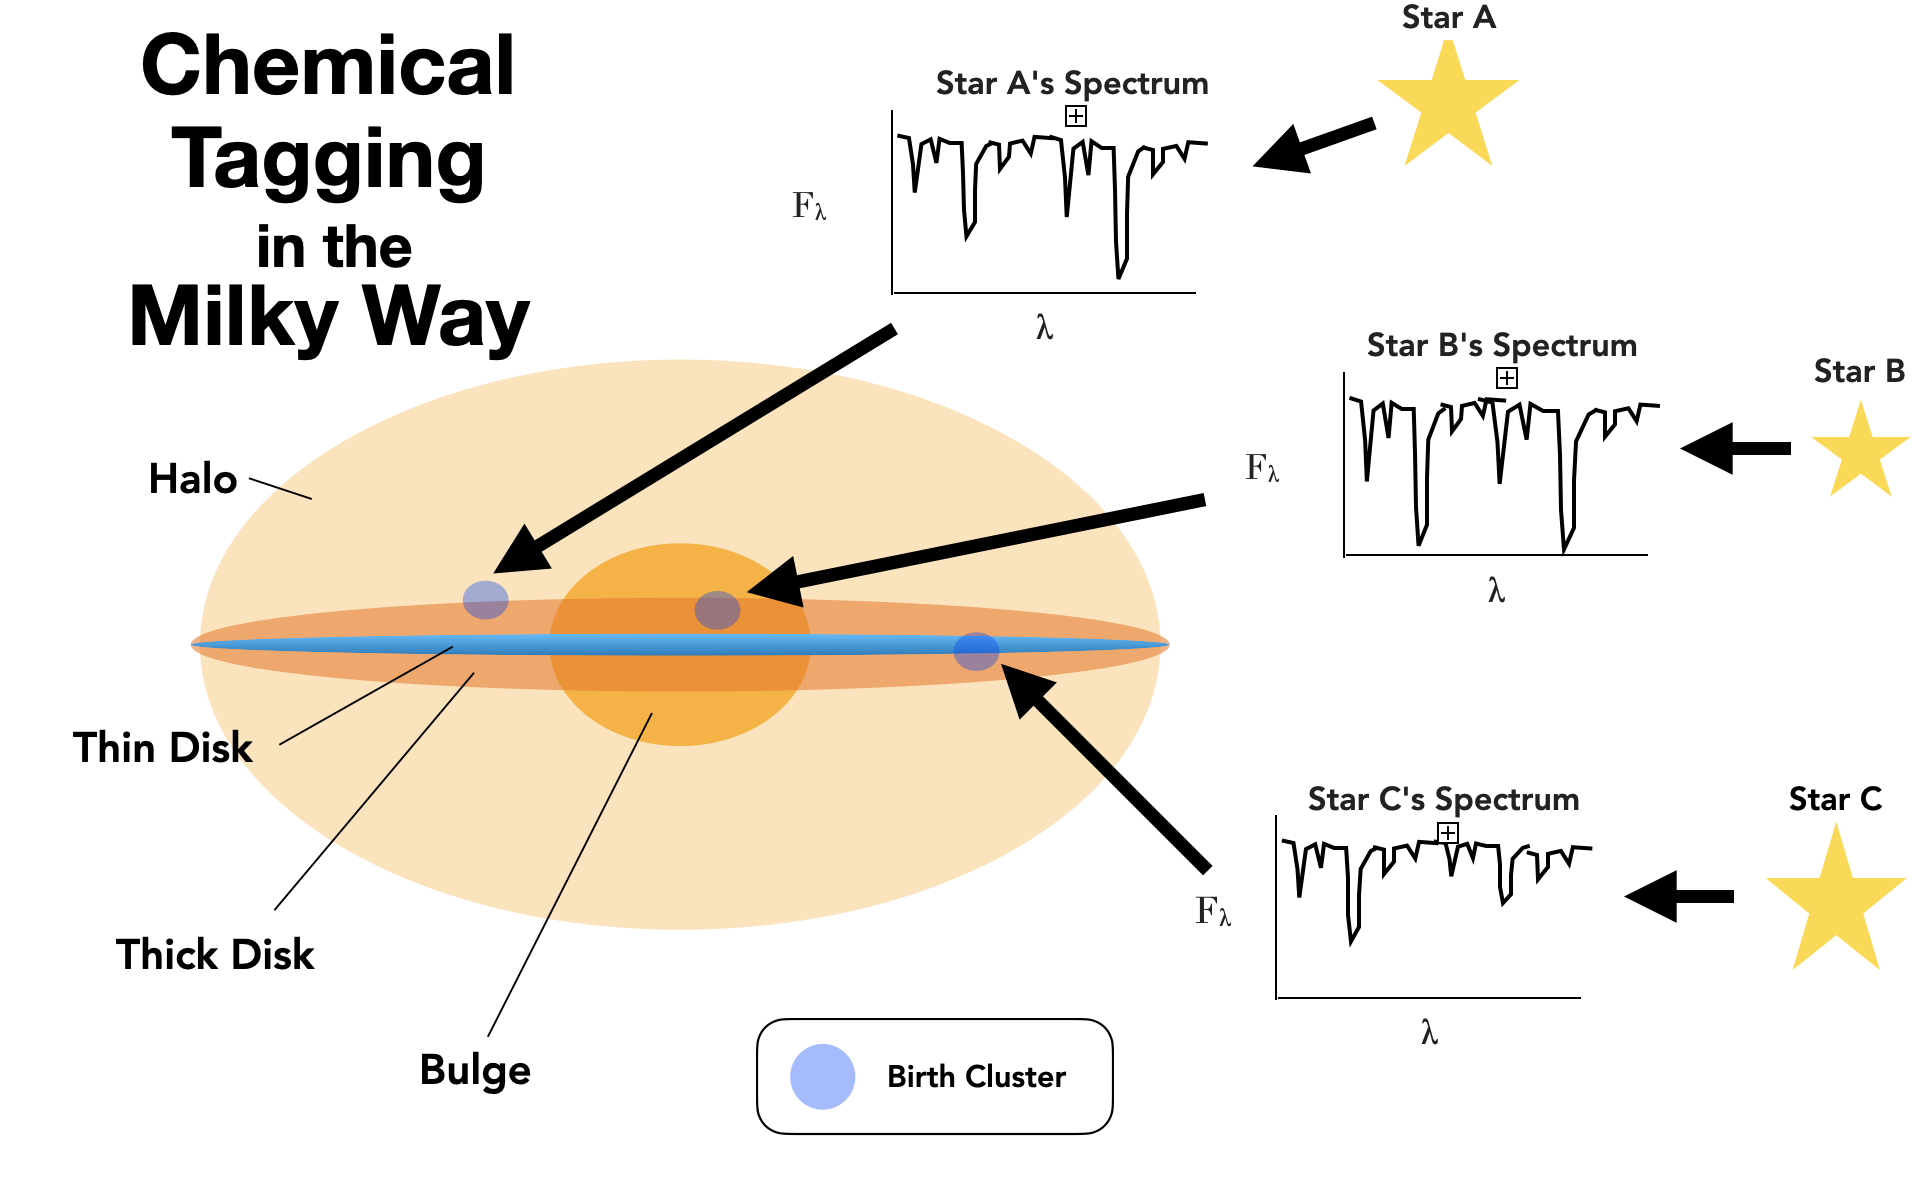 """A diagram of chemical tagging.  The text """"Chemical Tagging in the Milky Way"""" in bold text lies at the top left corner of the image.  In the center of the image is a large toy Milky Way, situated edge-on to the viewer.  This Milky Way is composed of a thin disk (in blue), a thick disk (in translucent dark orange), a central bulge (opaque orange), and a hazy light orange halo surrounding the entire structure.  There are three pale blue, spherical """"birth clusters"""" situated across the Milky Way disk.  There are three stars to the right of the image with arrows leading to spectra.  These spectra then have their own arrows pointing to the three birth clusters in the Milky Way diagram."""